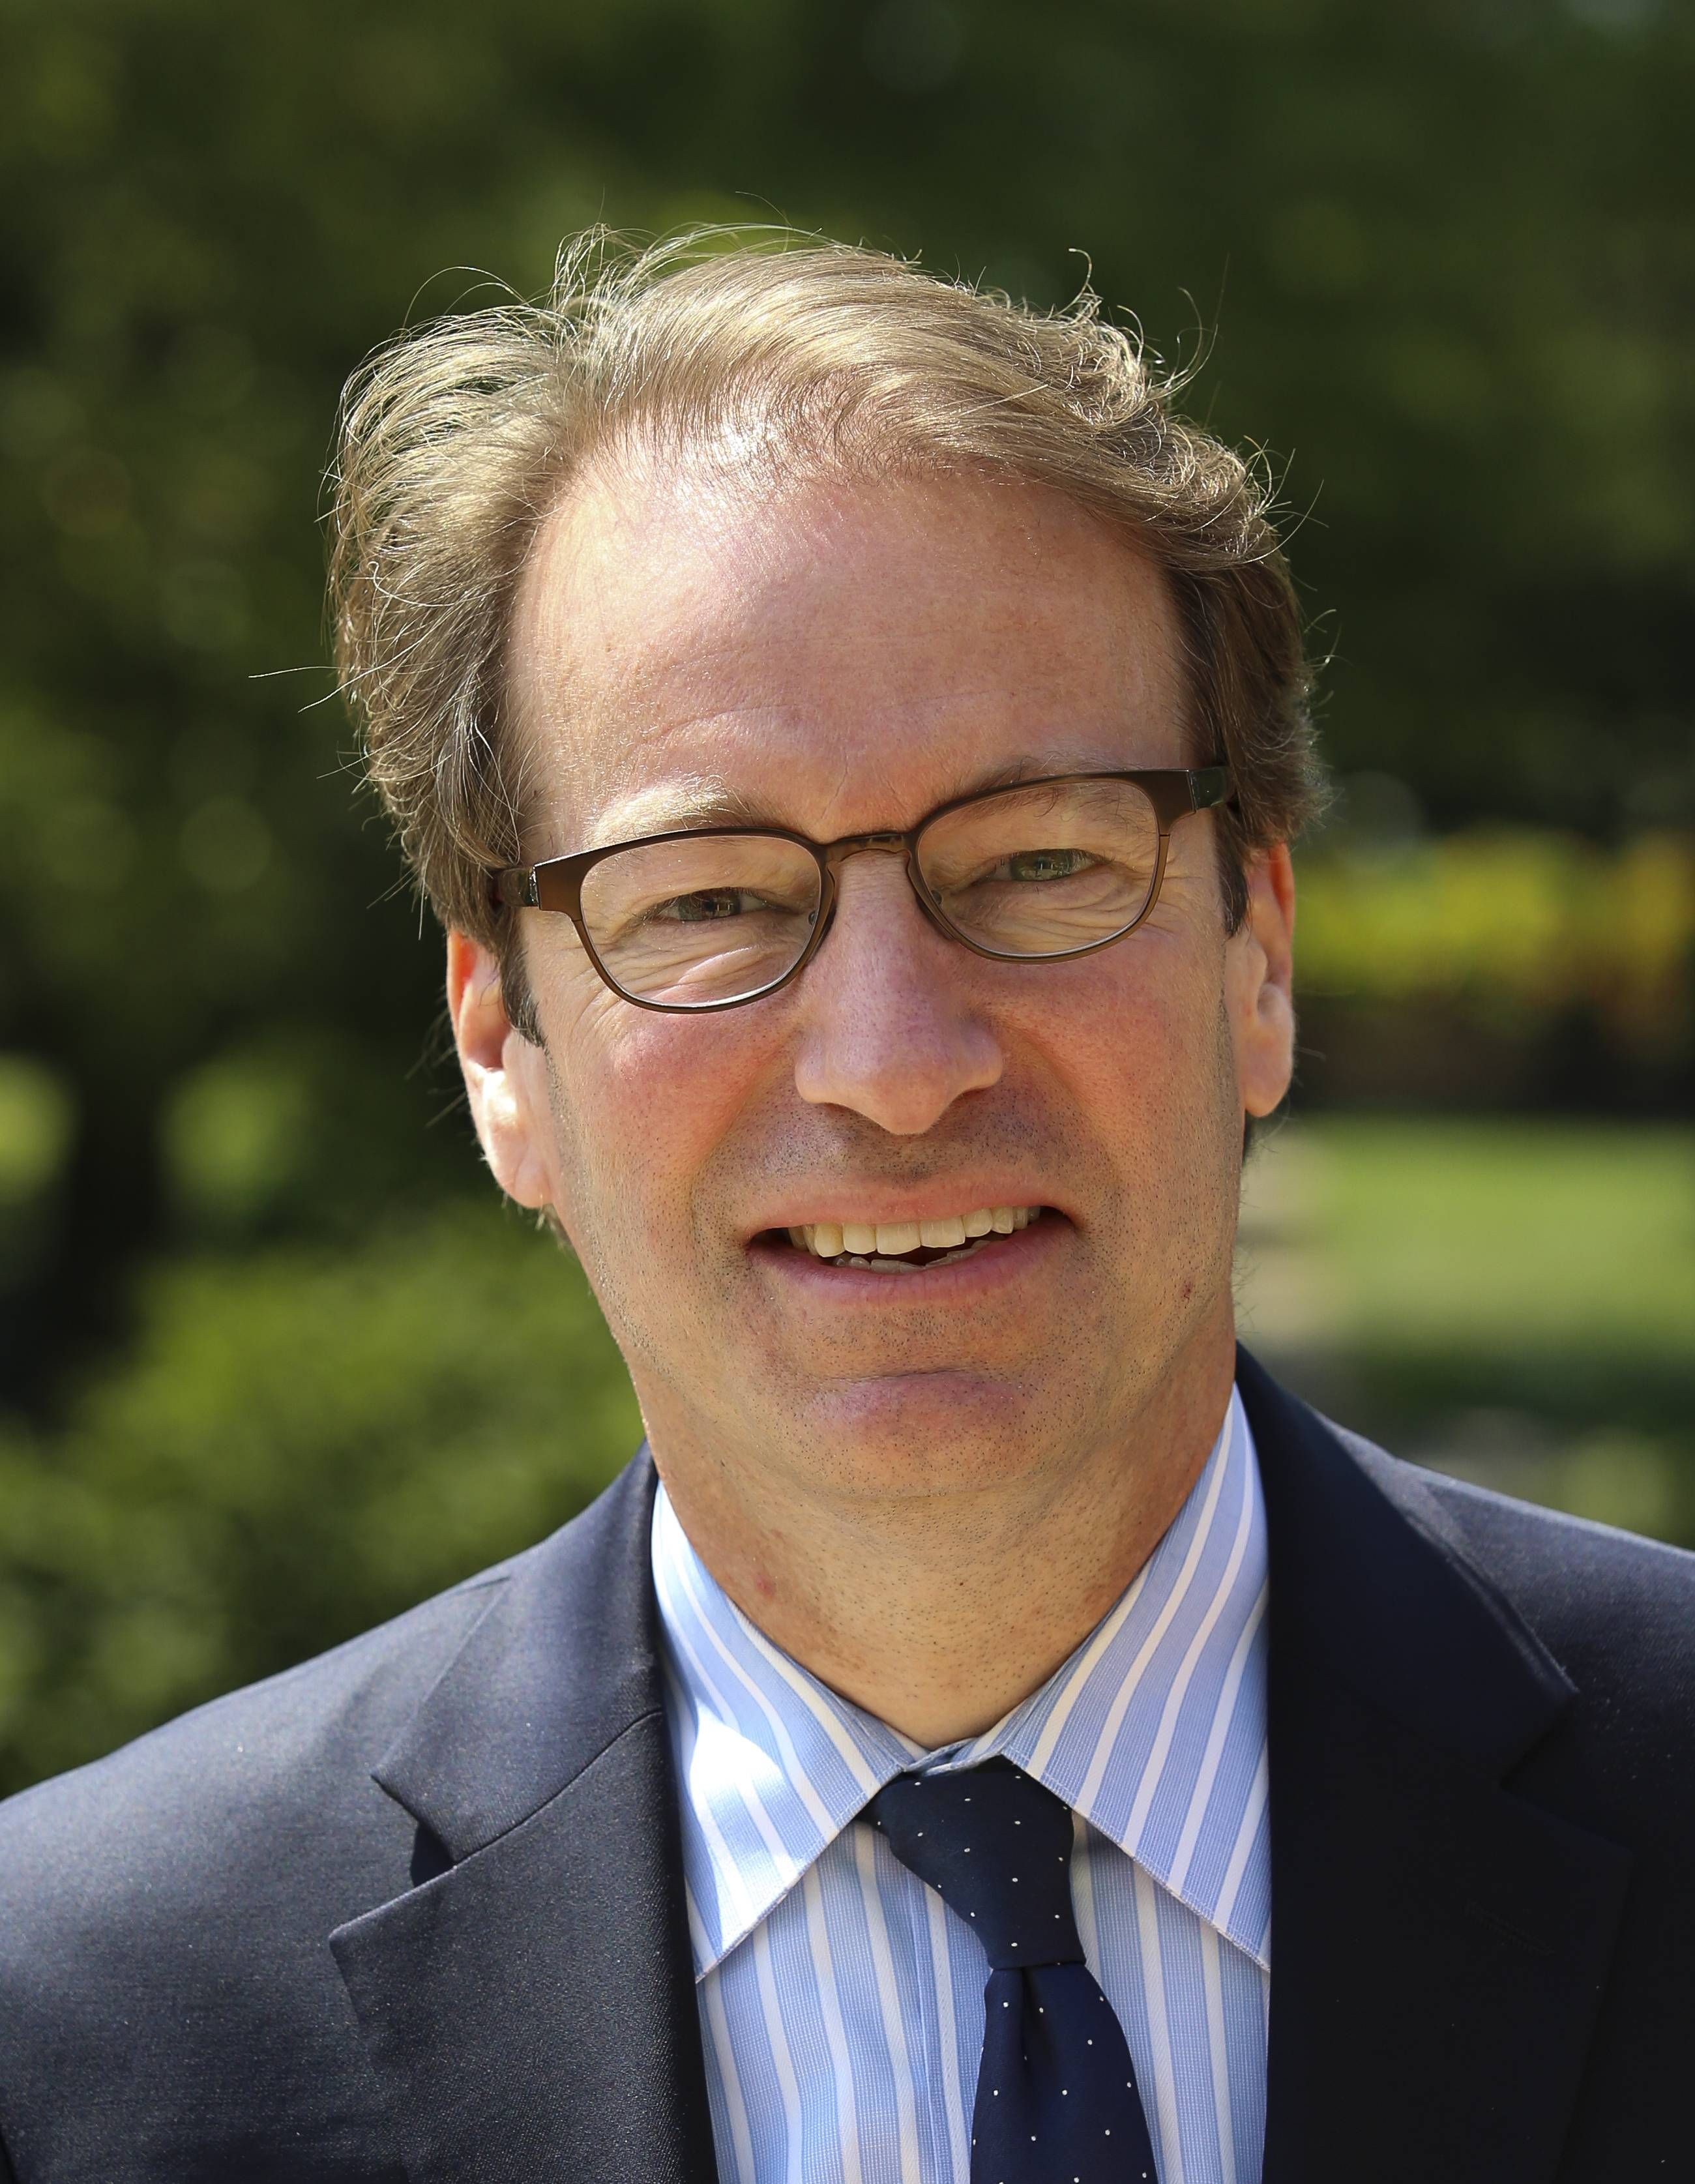 Republican U.S. Rep. Peter Roskam of Wheaton says he is troubled by reports that President Donald Trump gave classified information to the Russians,